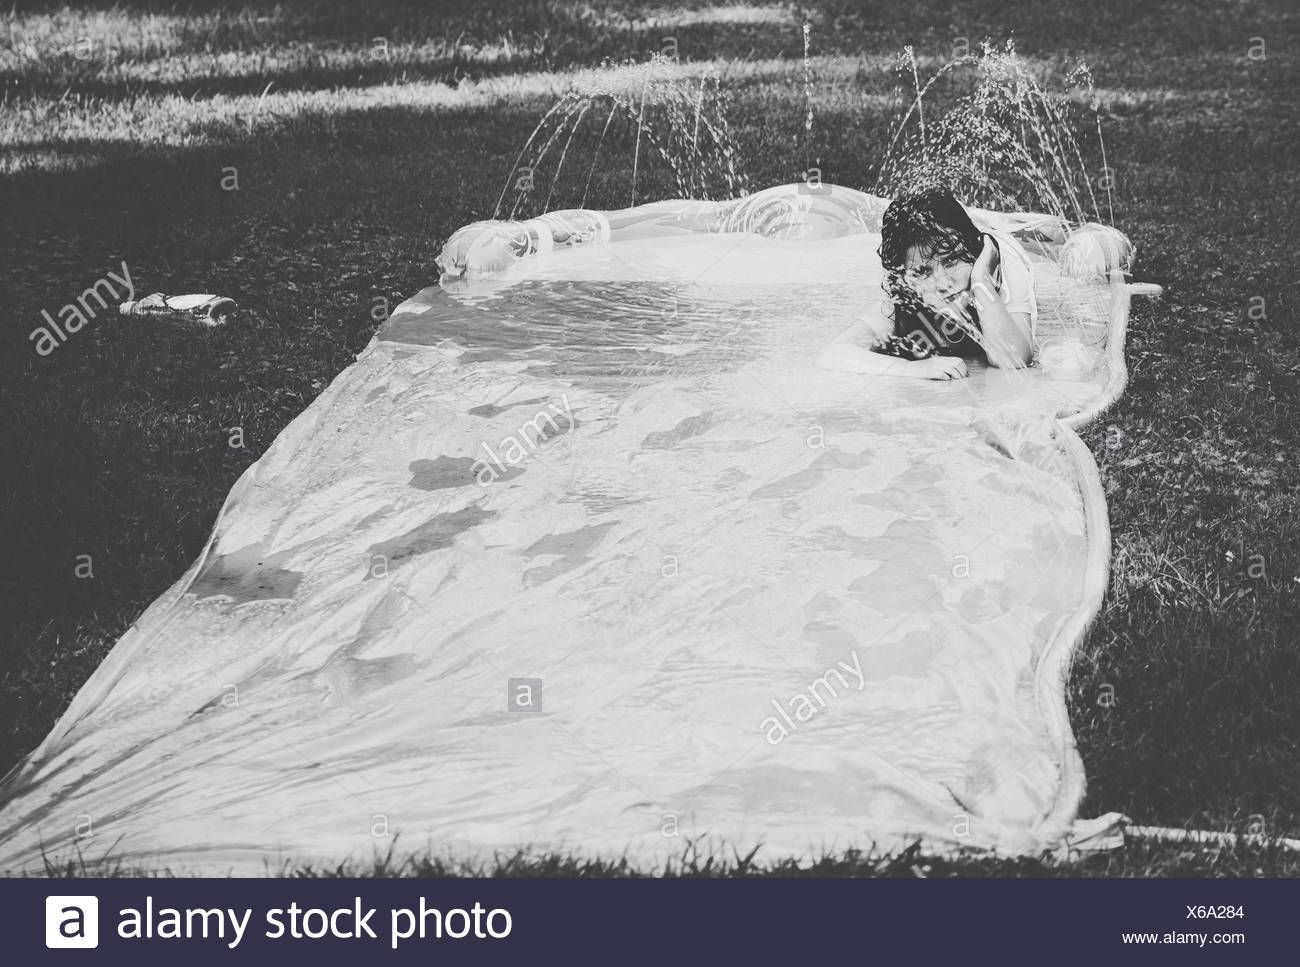 Portrait Of Girl Lying On Water Slide Canvas On Grass In Back Yard - Stock Image